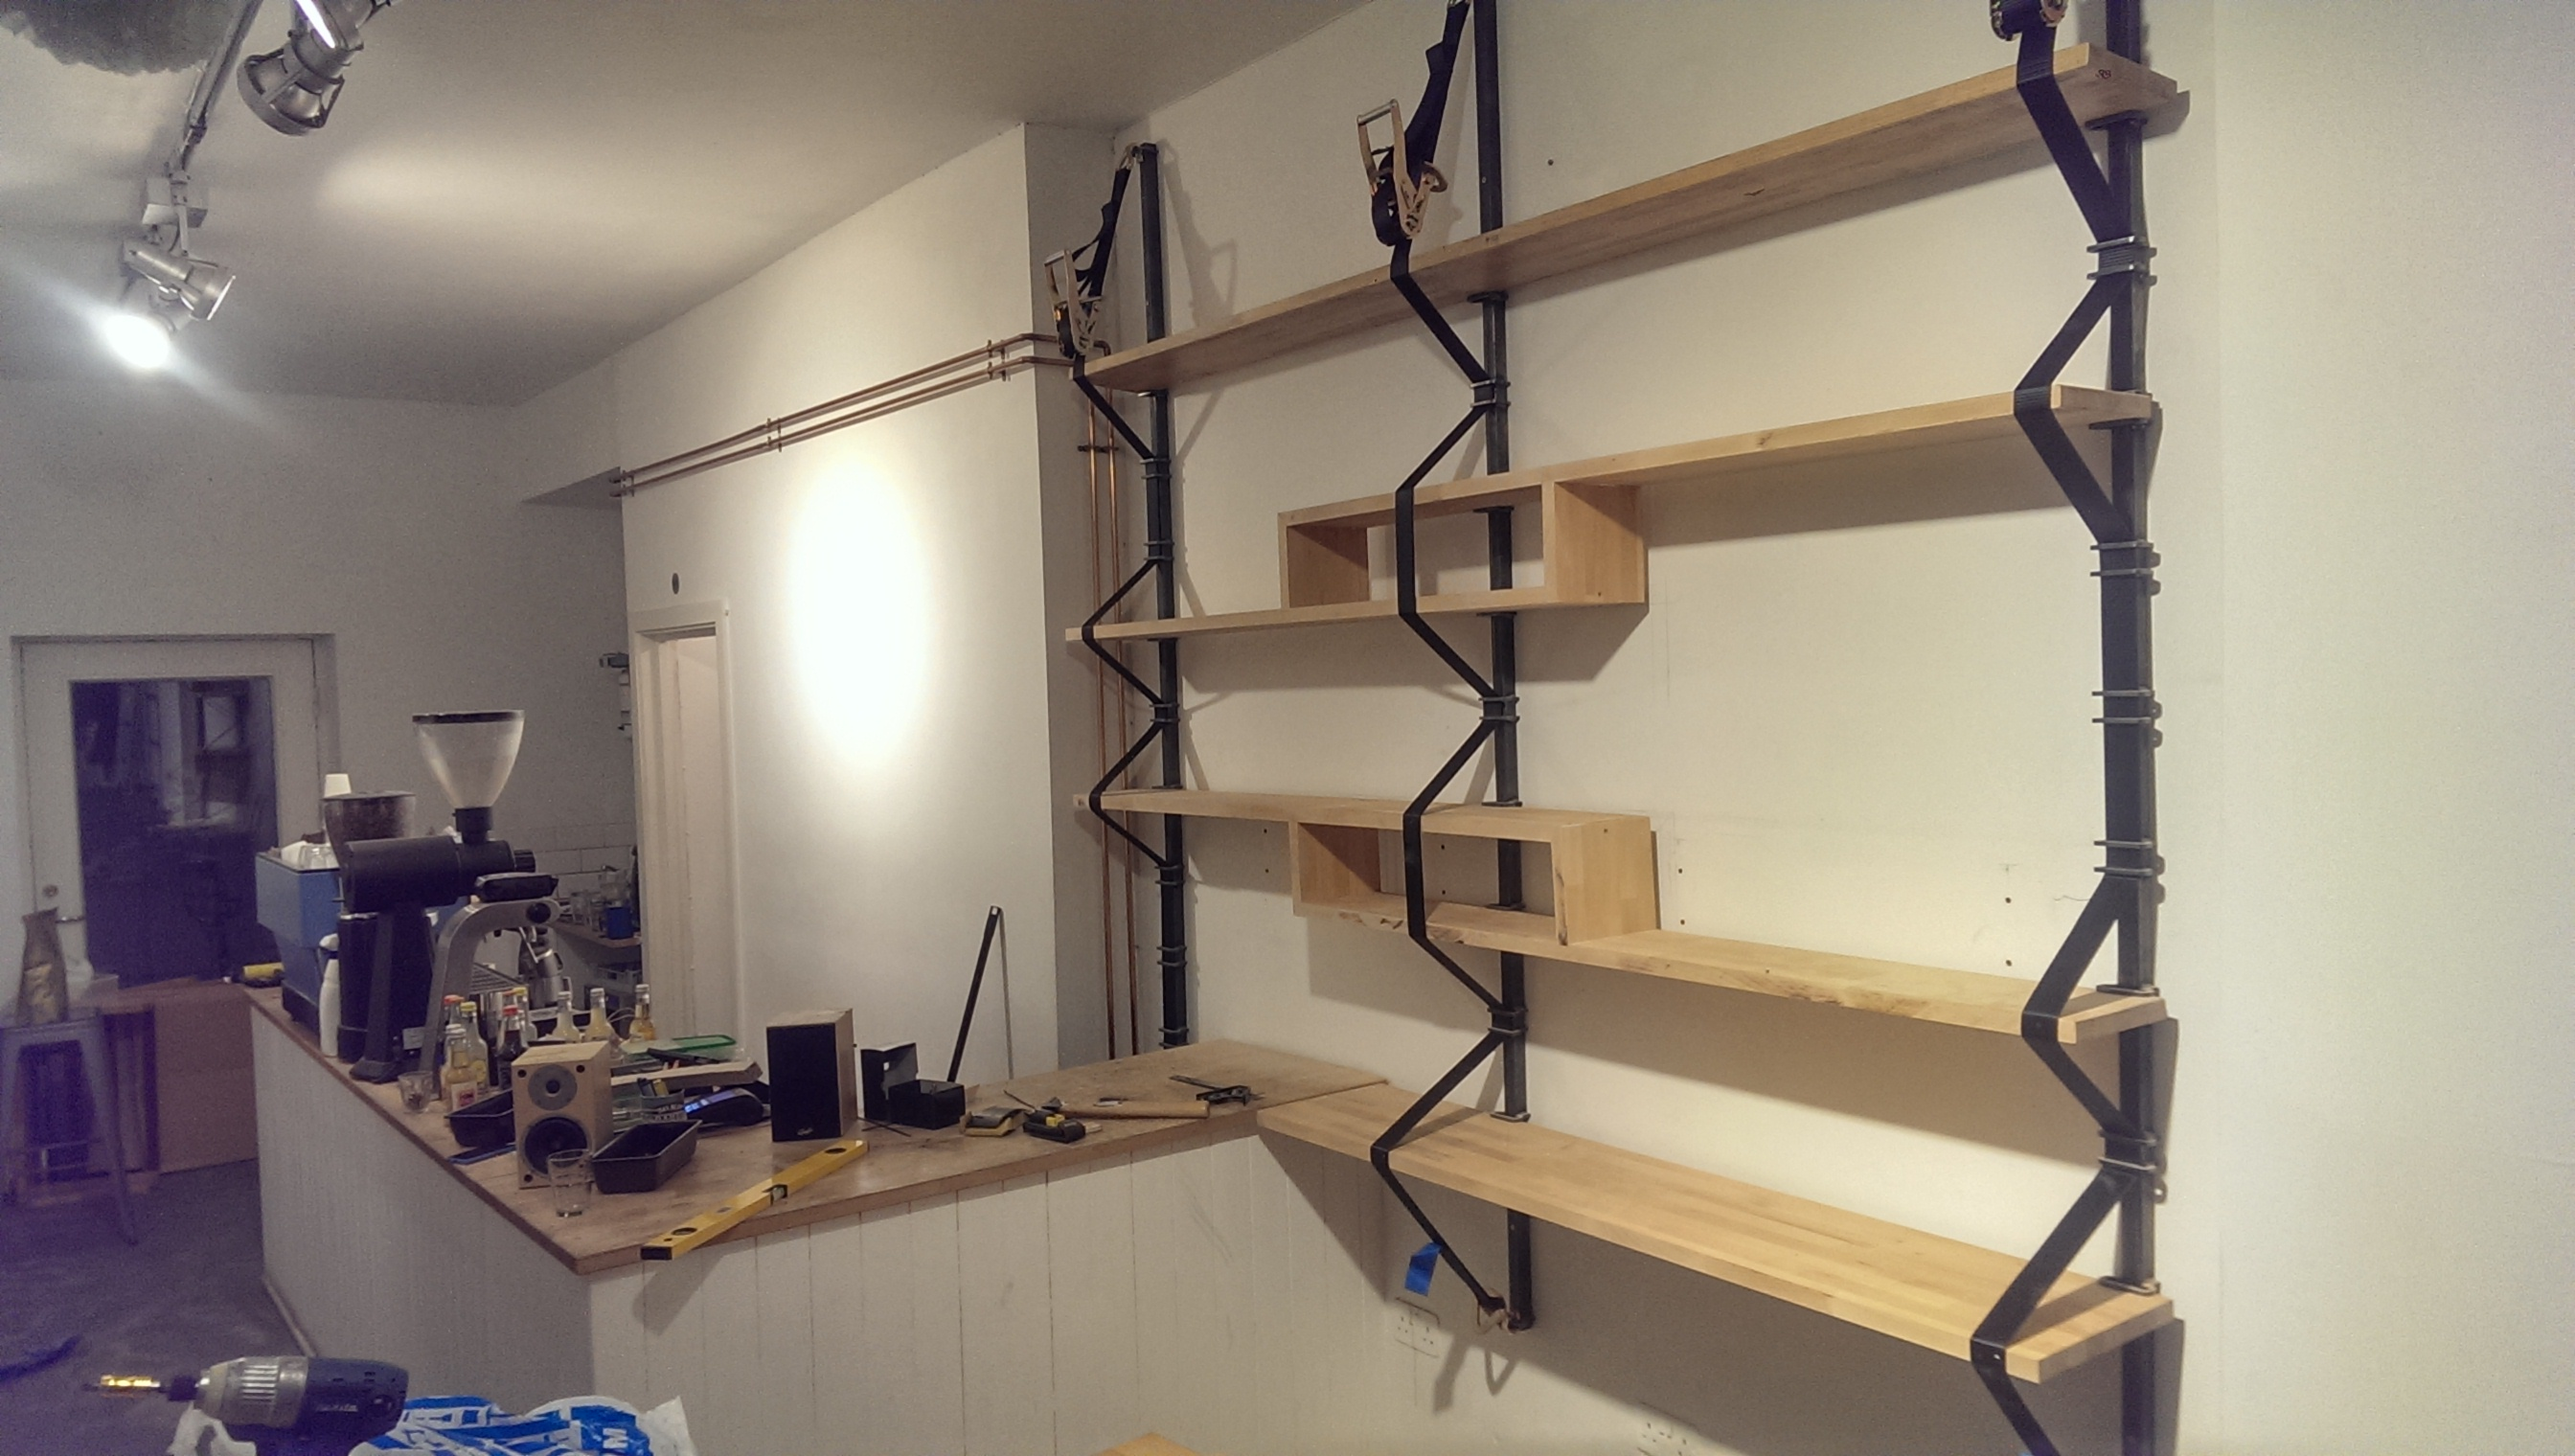 The shelves finally up.